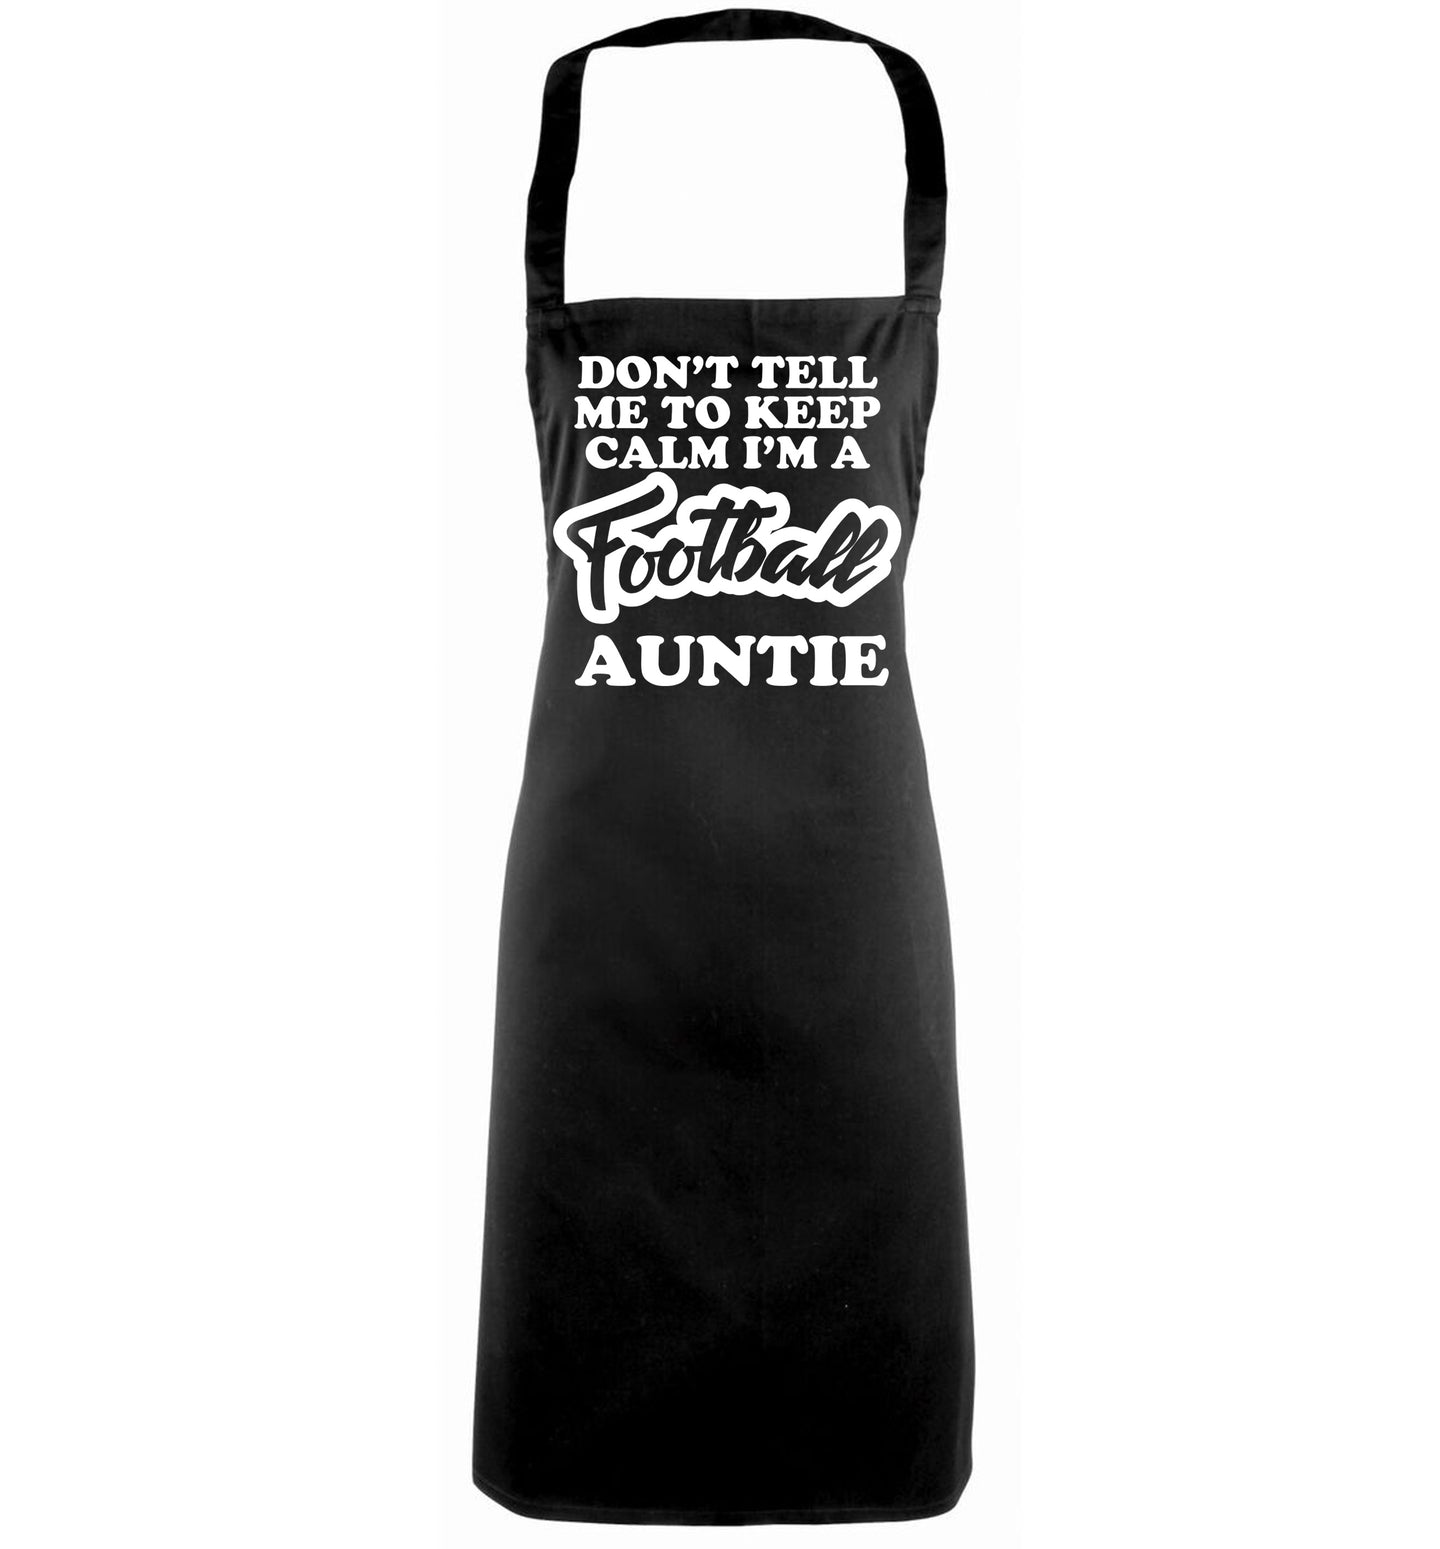 Don't tell me to keep calm I'm a football auntie black apron